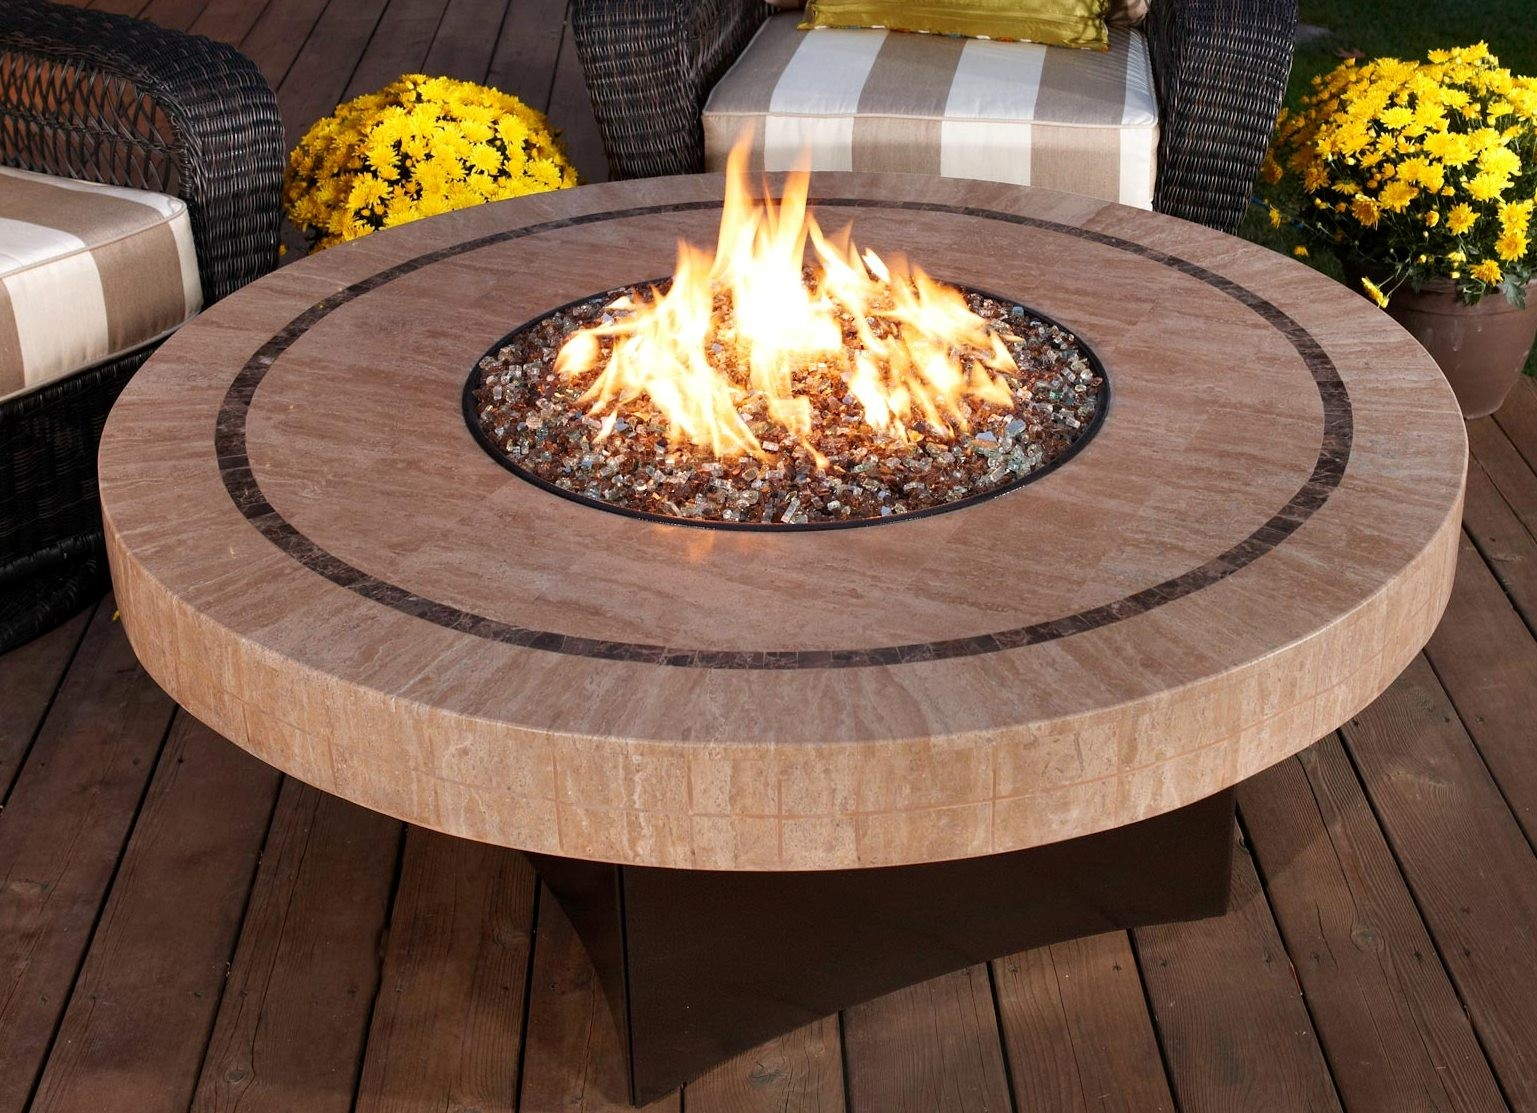 Best Natural Gas Outdoor Fire Pits 174kaartenstempnl throughout sizing 1537 X 1113